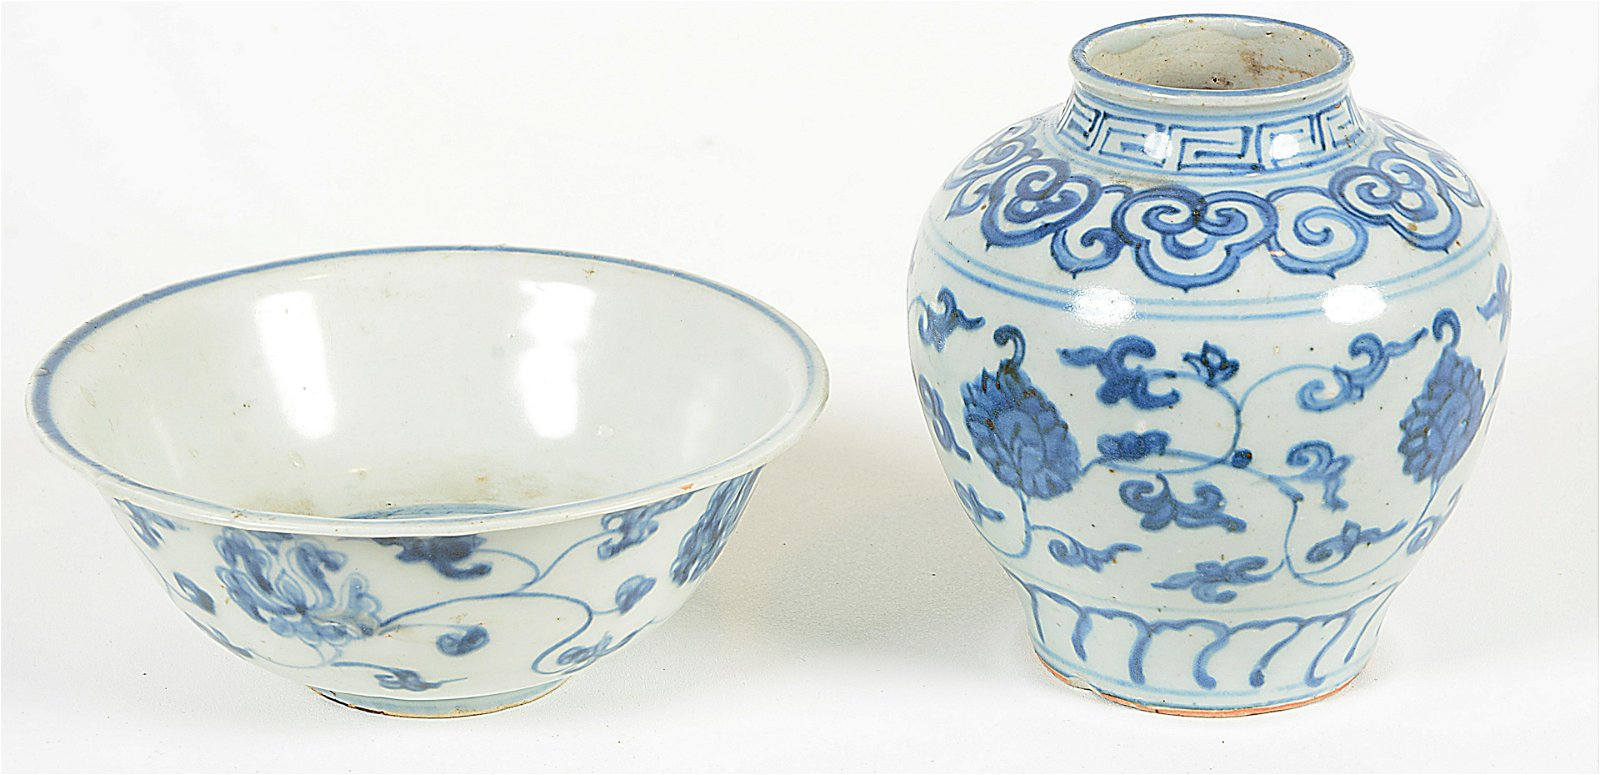 Two Ming Period Porcelain Objects